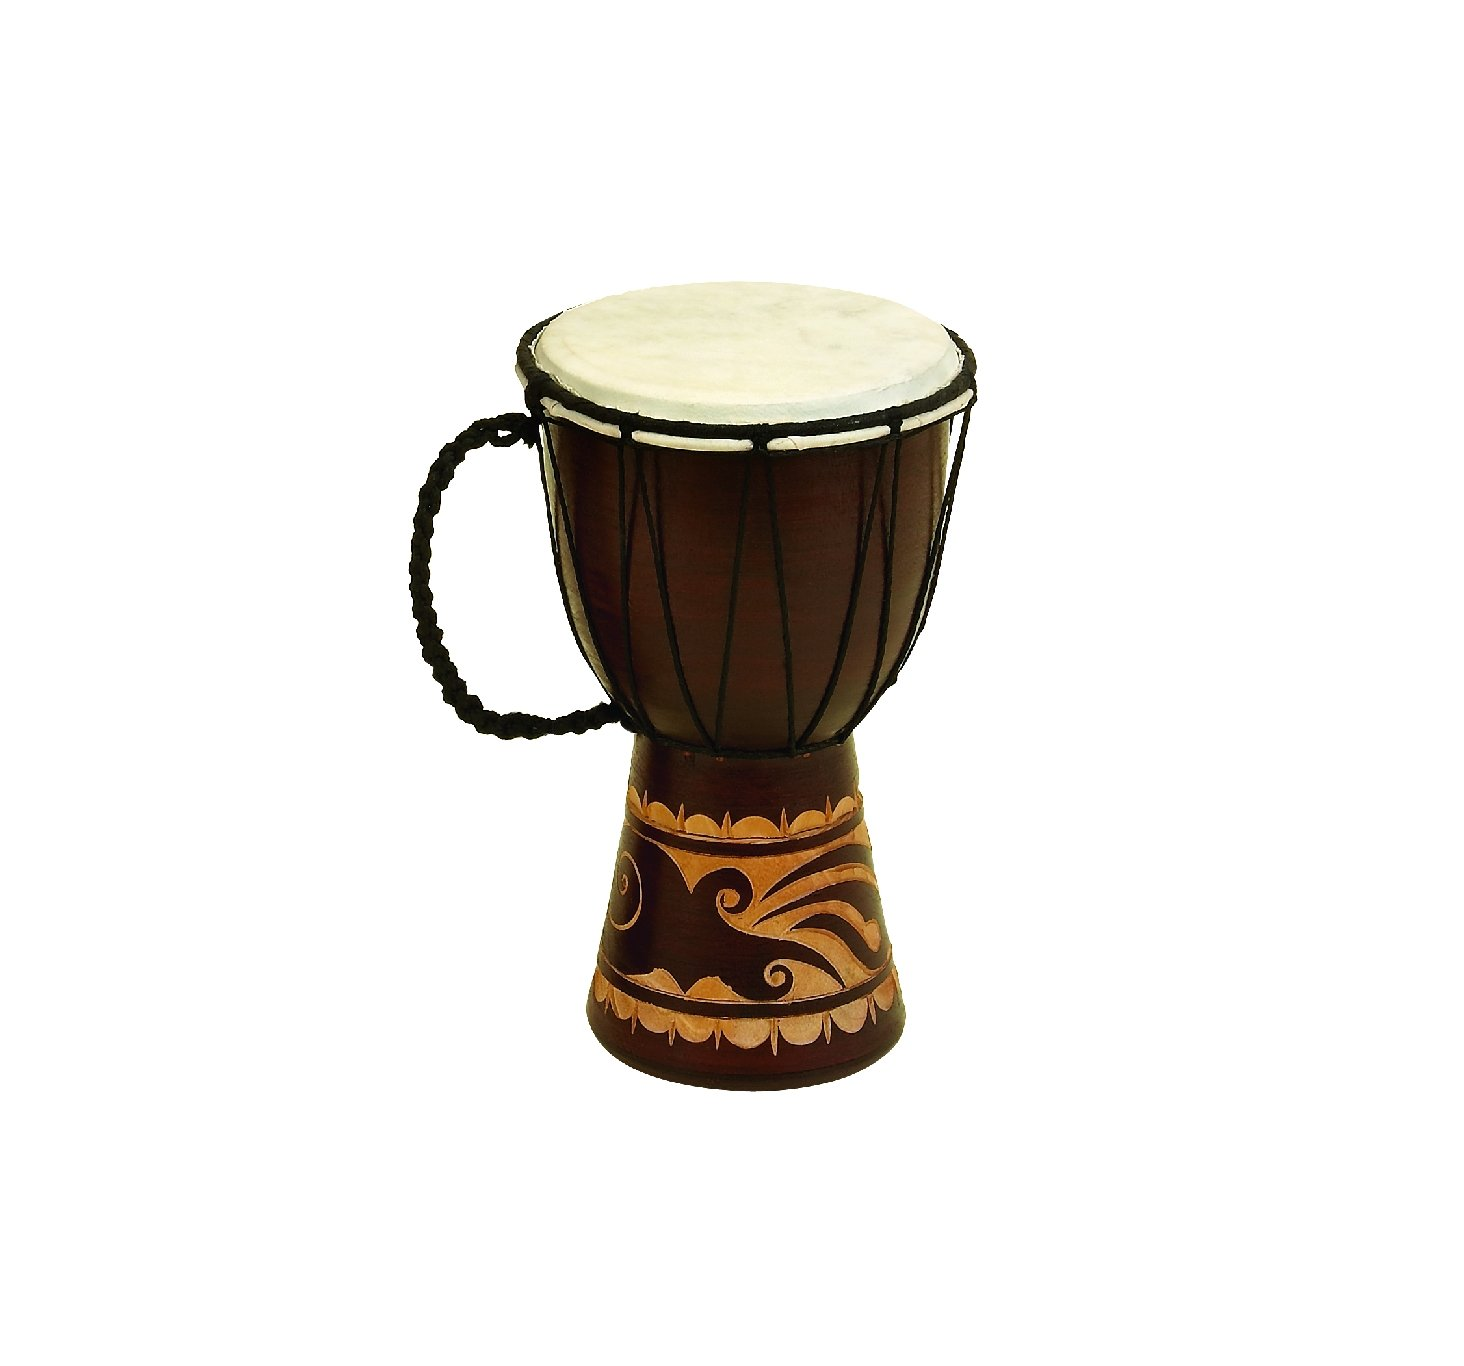 Deco 79 89848 Wood & Leather Djembe Drum by Deco 79